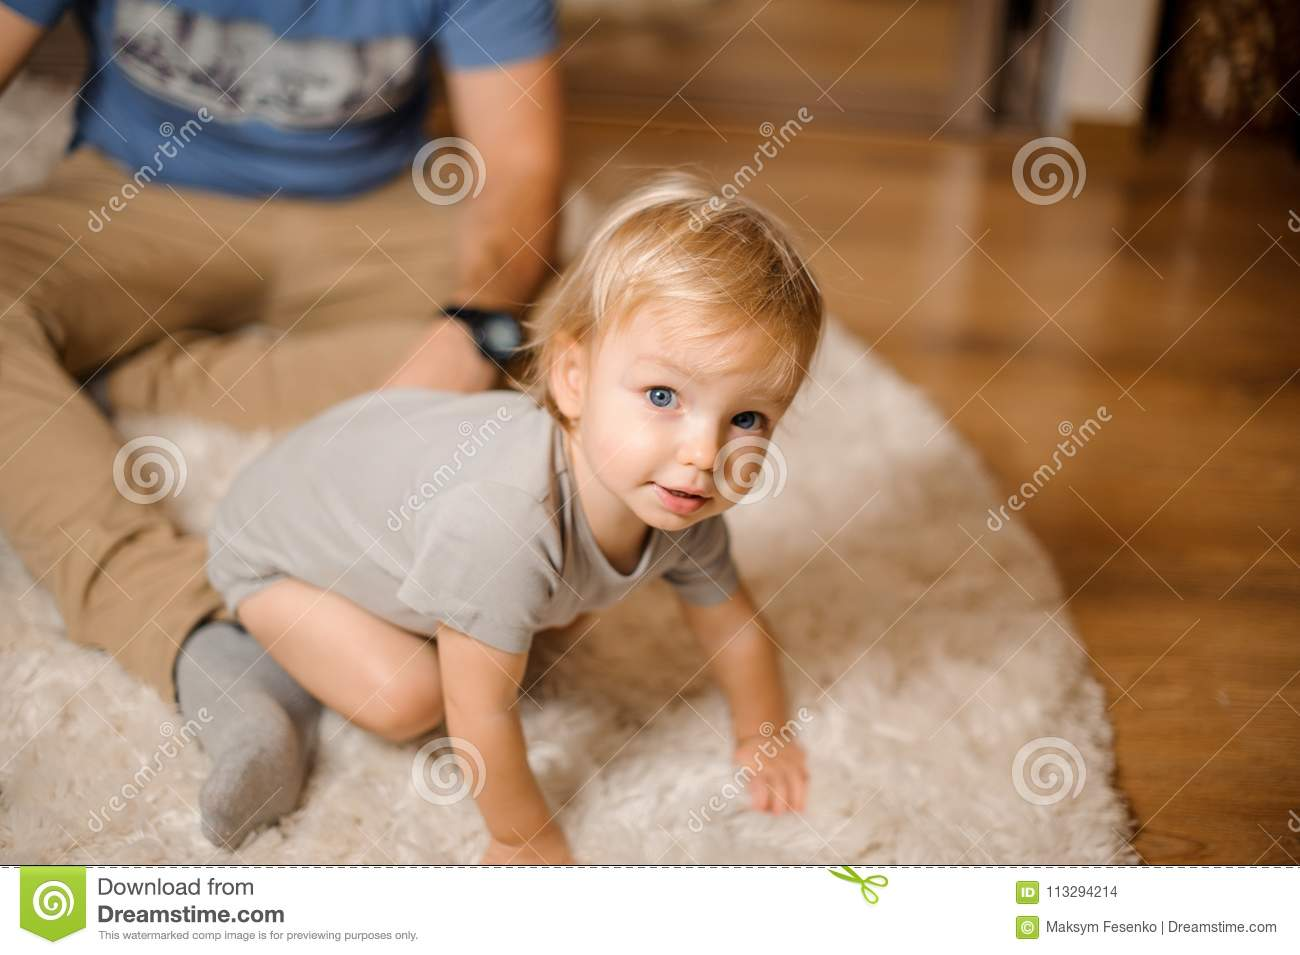 Cute blonde and blue-eyed baby dressed in a grey romper